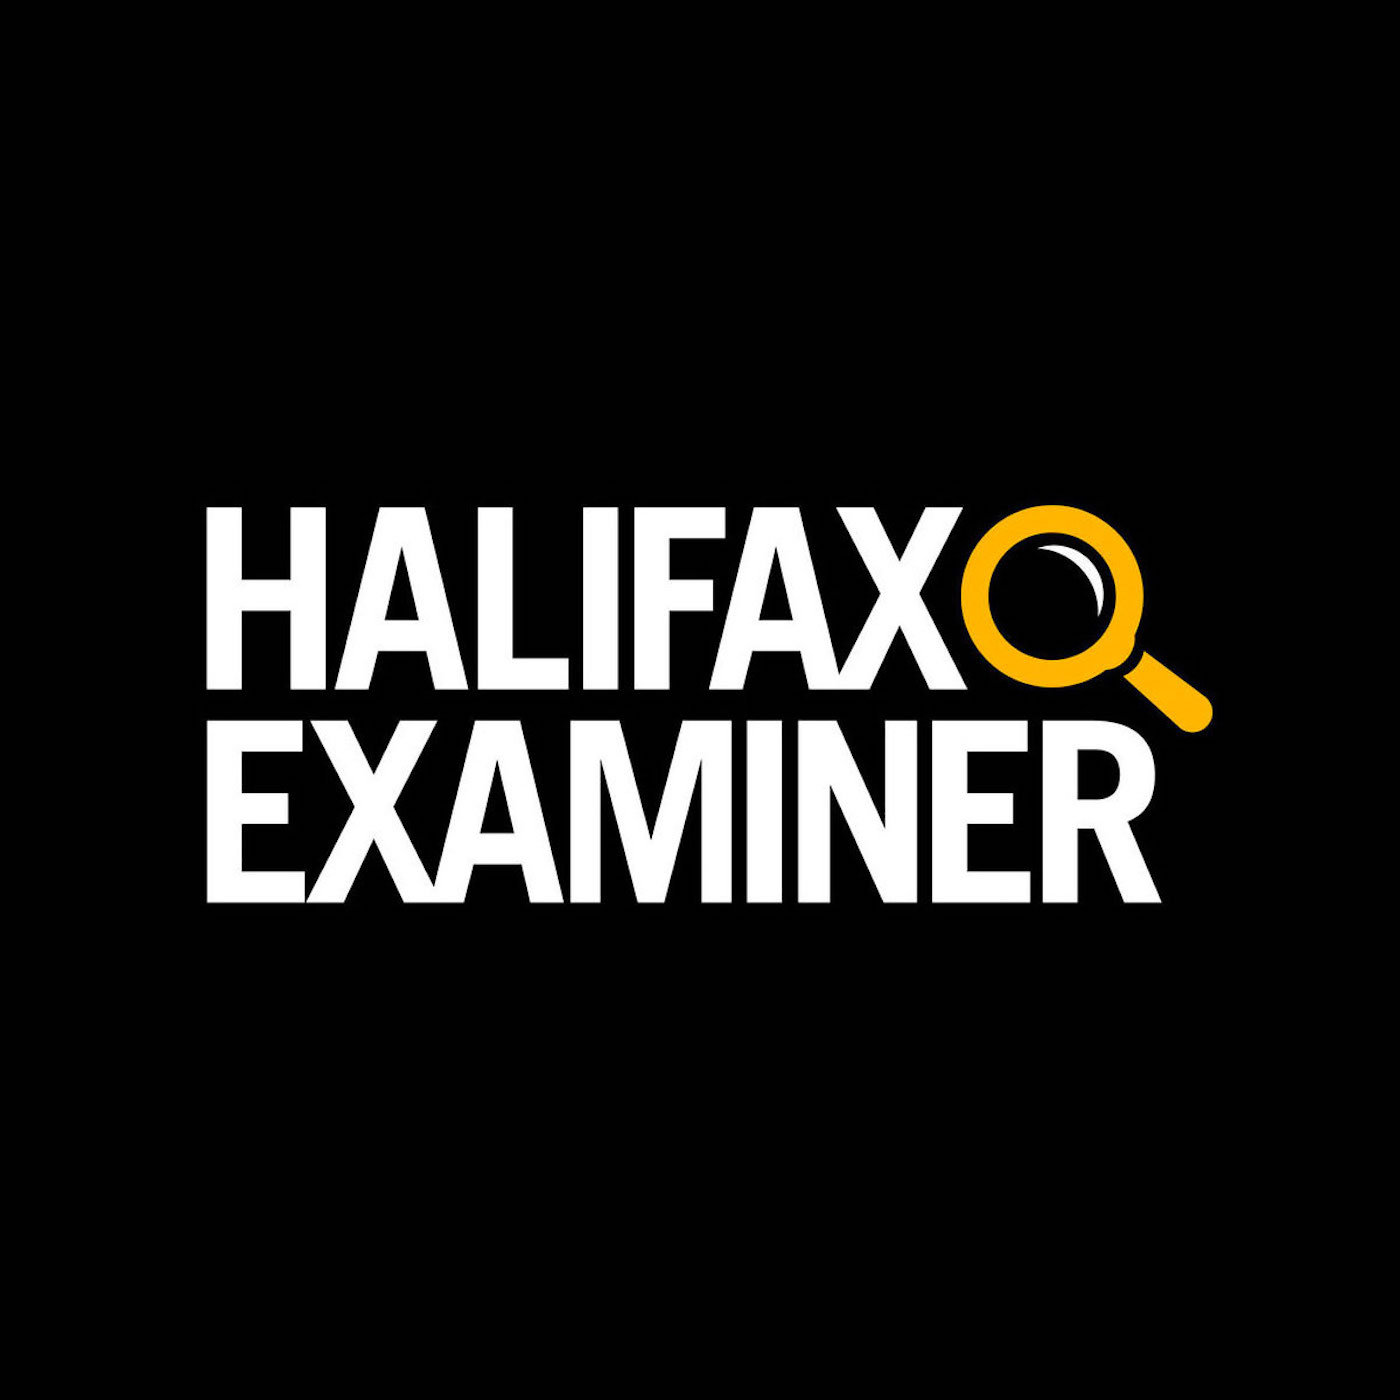 Examineradio - The Halifax Examiner podcast show art